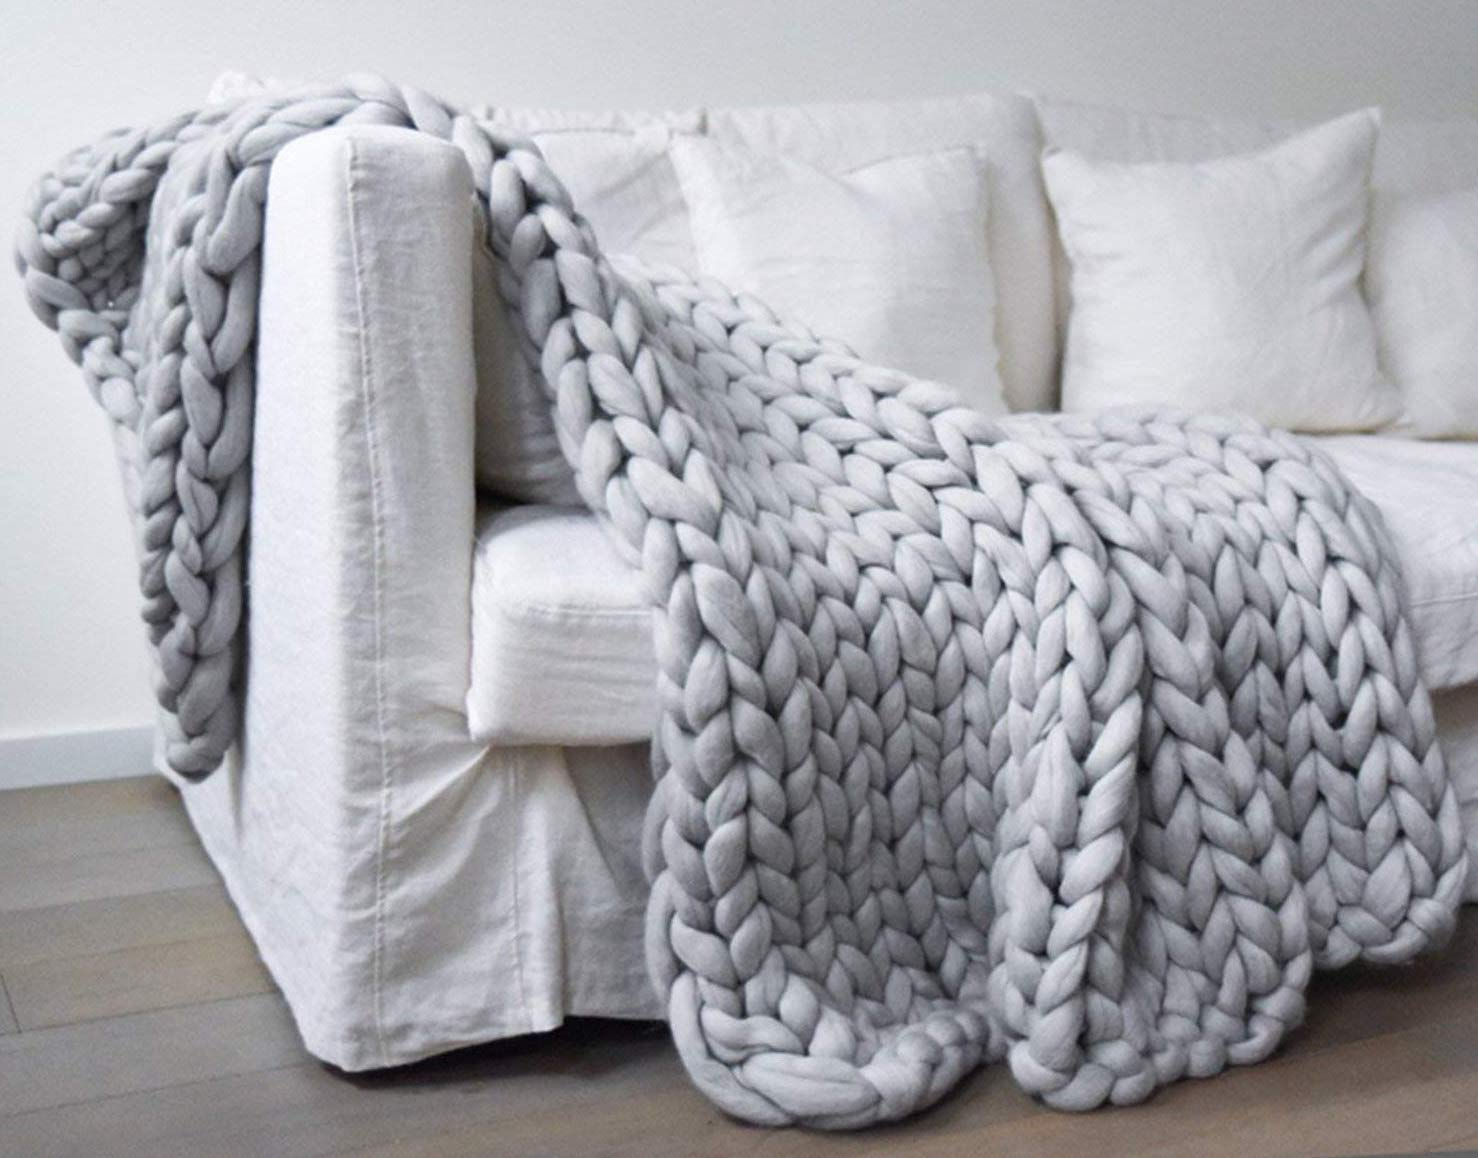 A chunky knit throw blanket